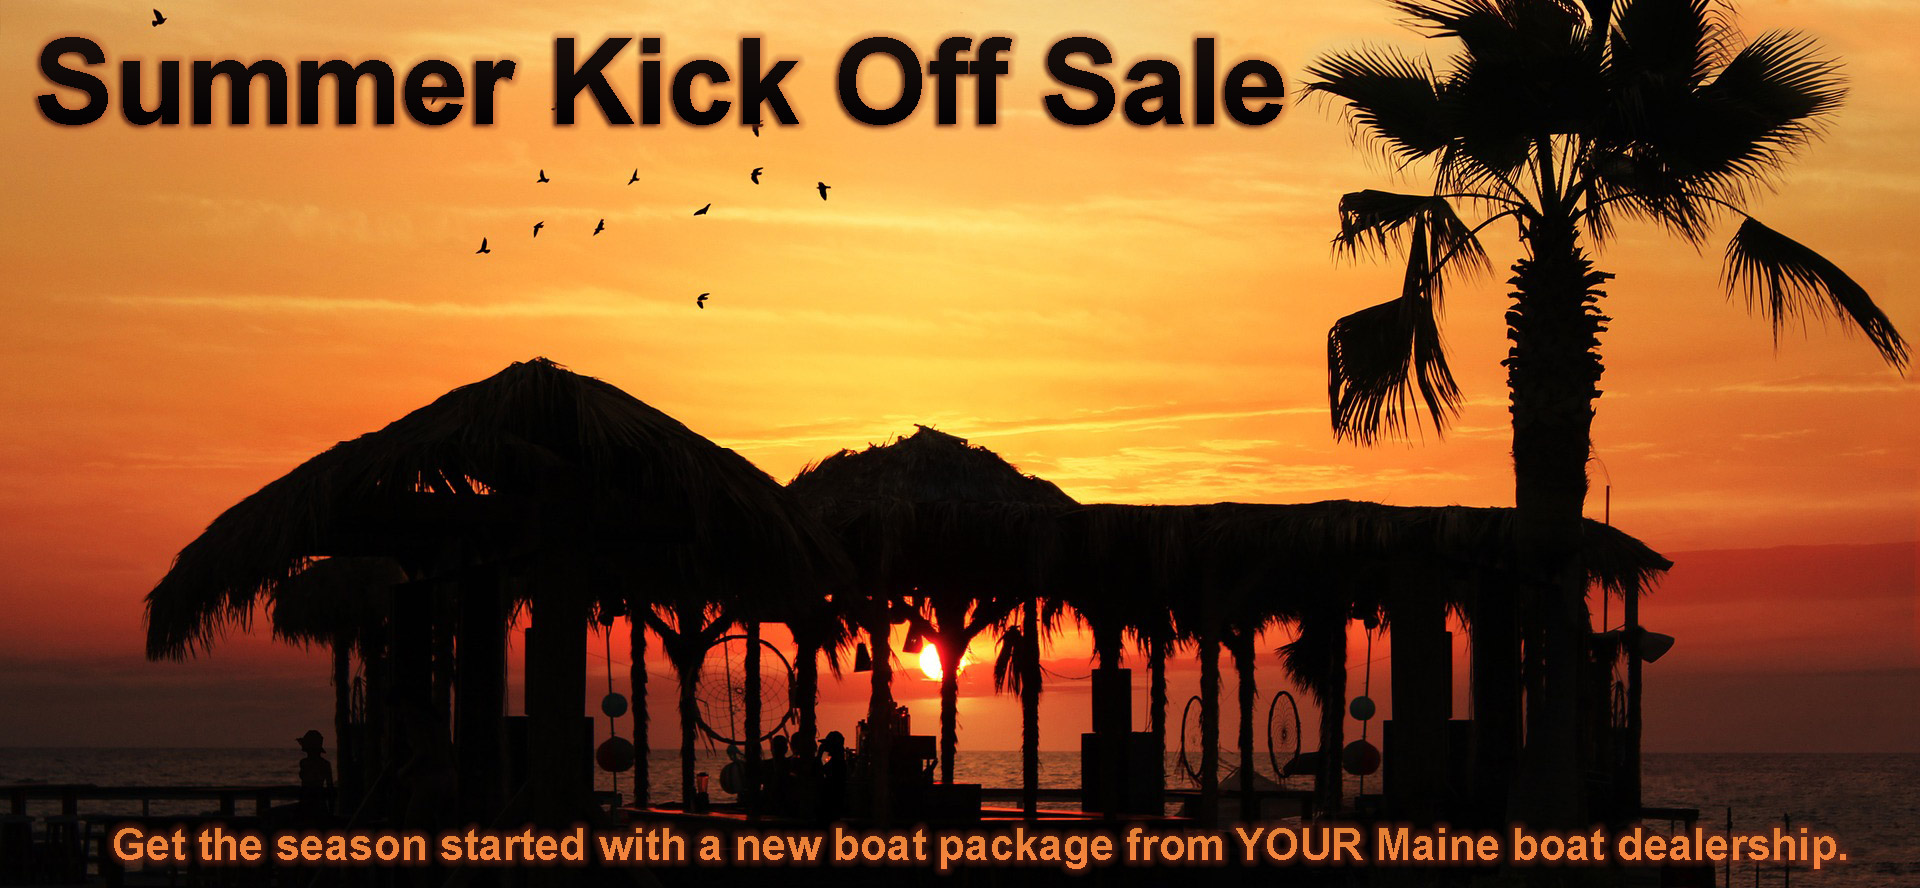 Summer Kickoff Boat Sale